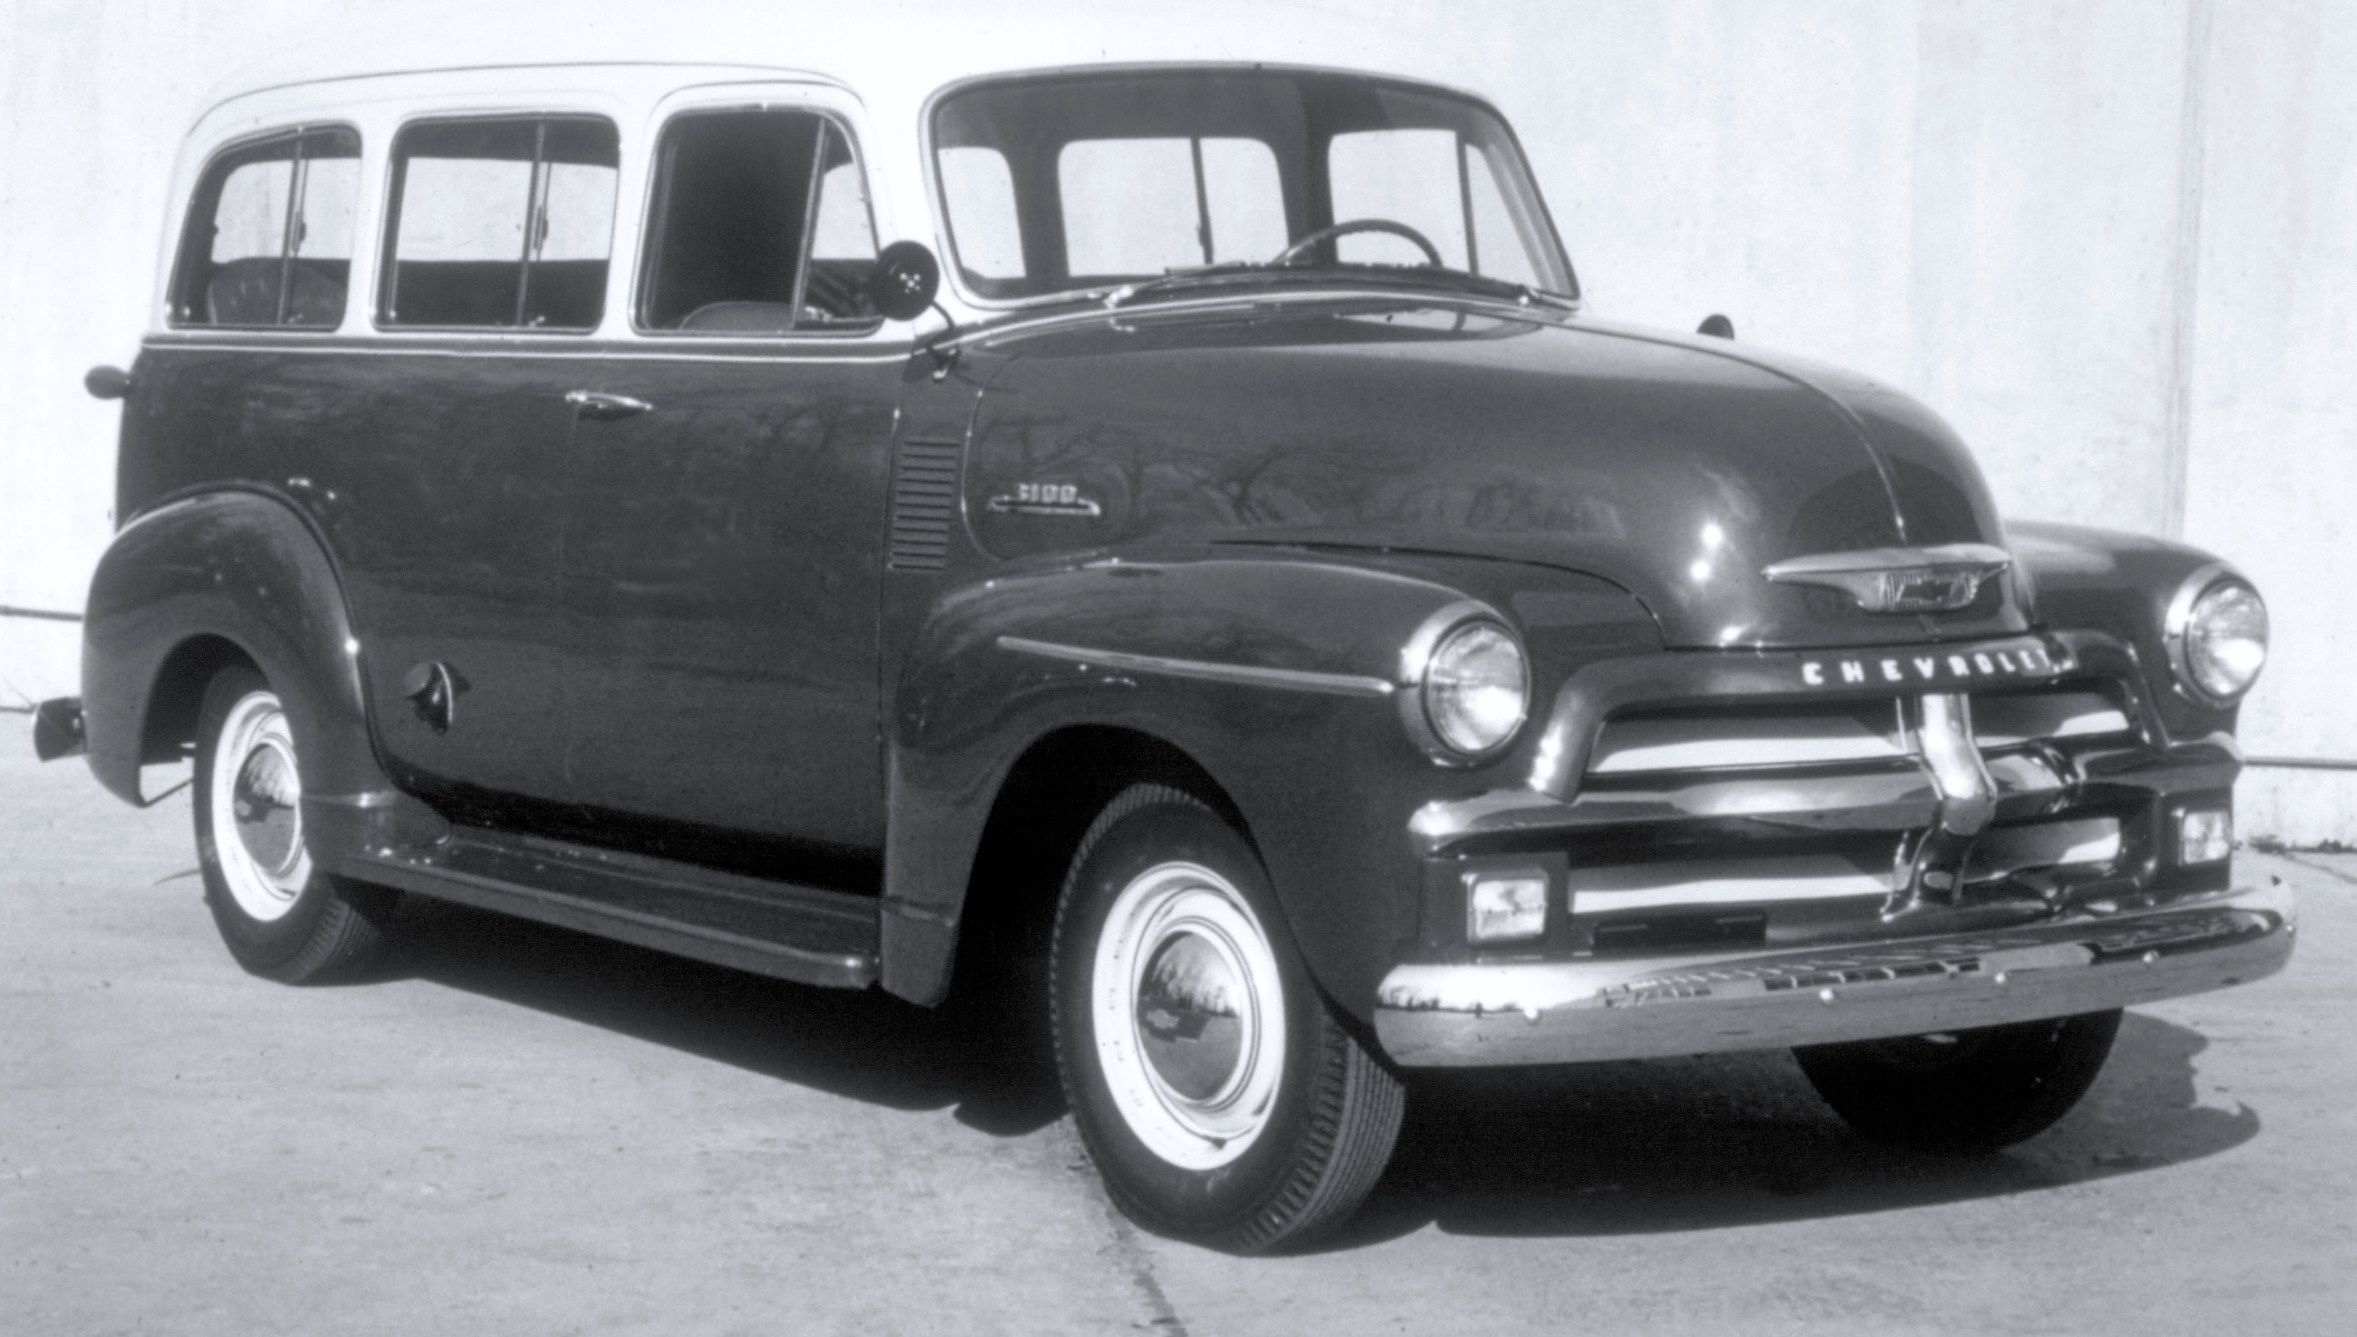 chevy suburban the workhorse turns 80 classiccars com journal classiccars com journal